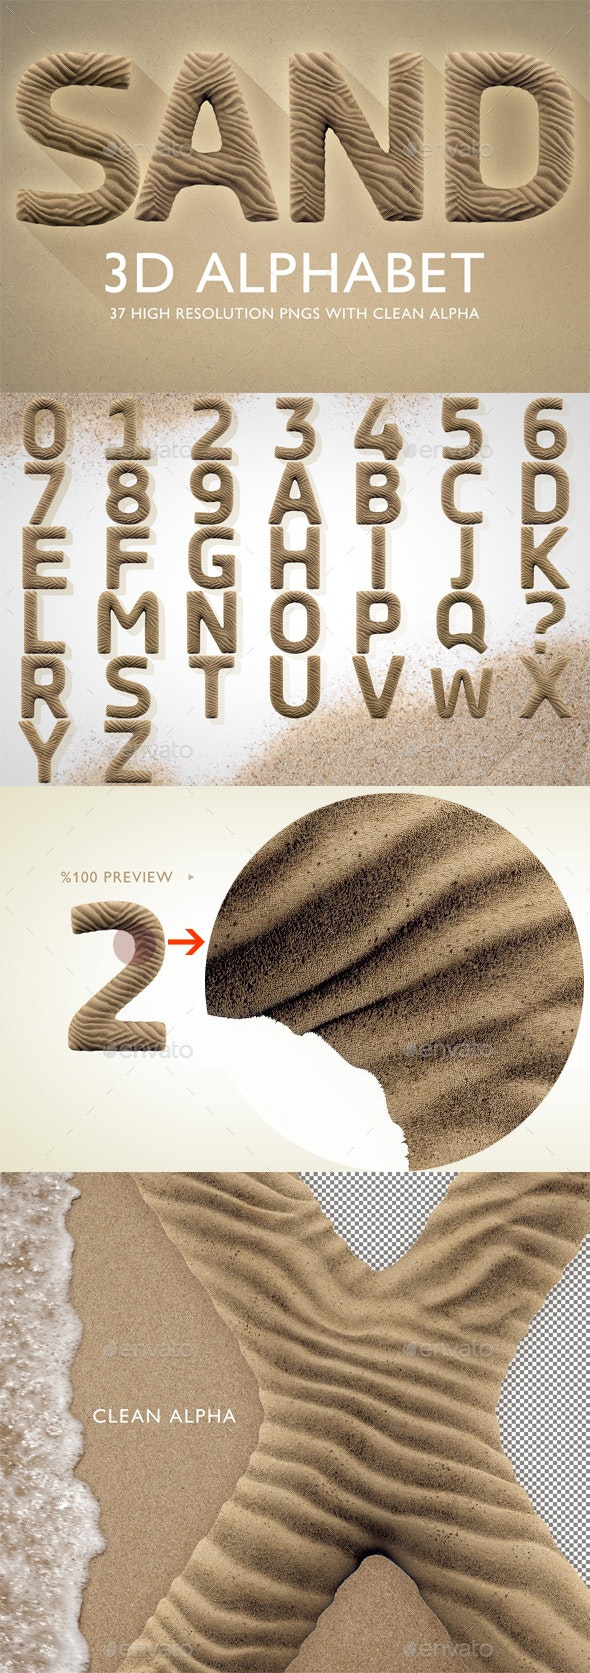 3D Render Set of Sand Alphabet - Text 3D Renders